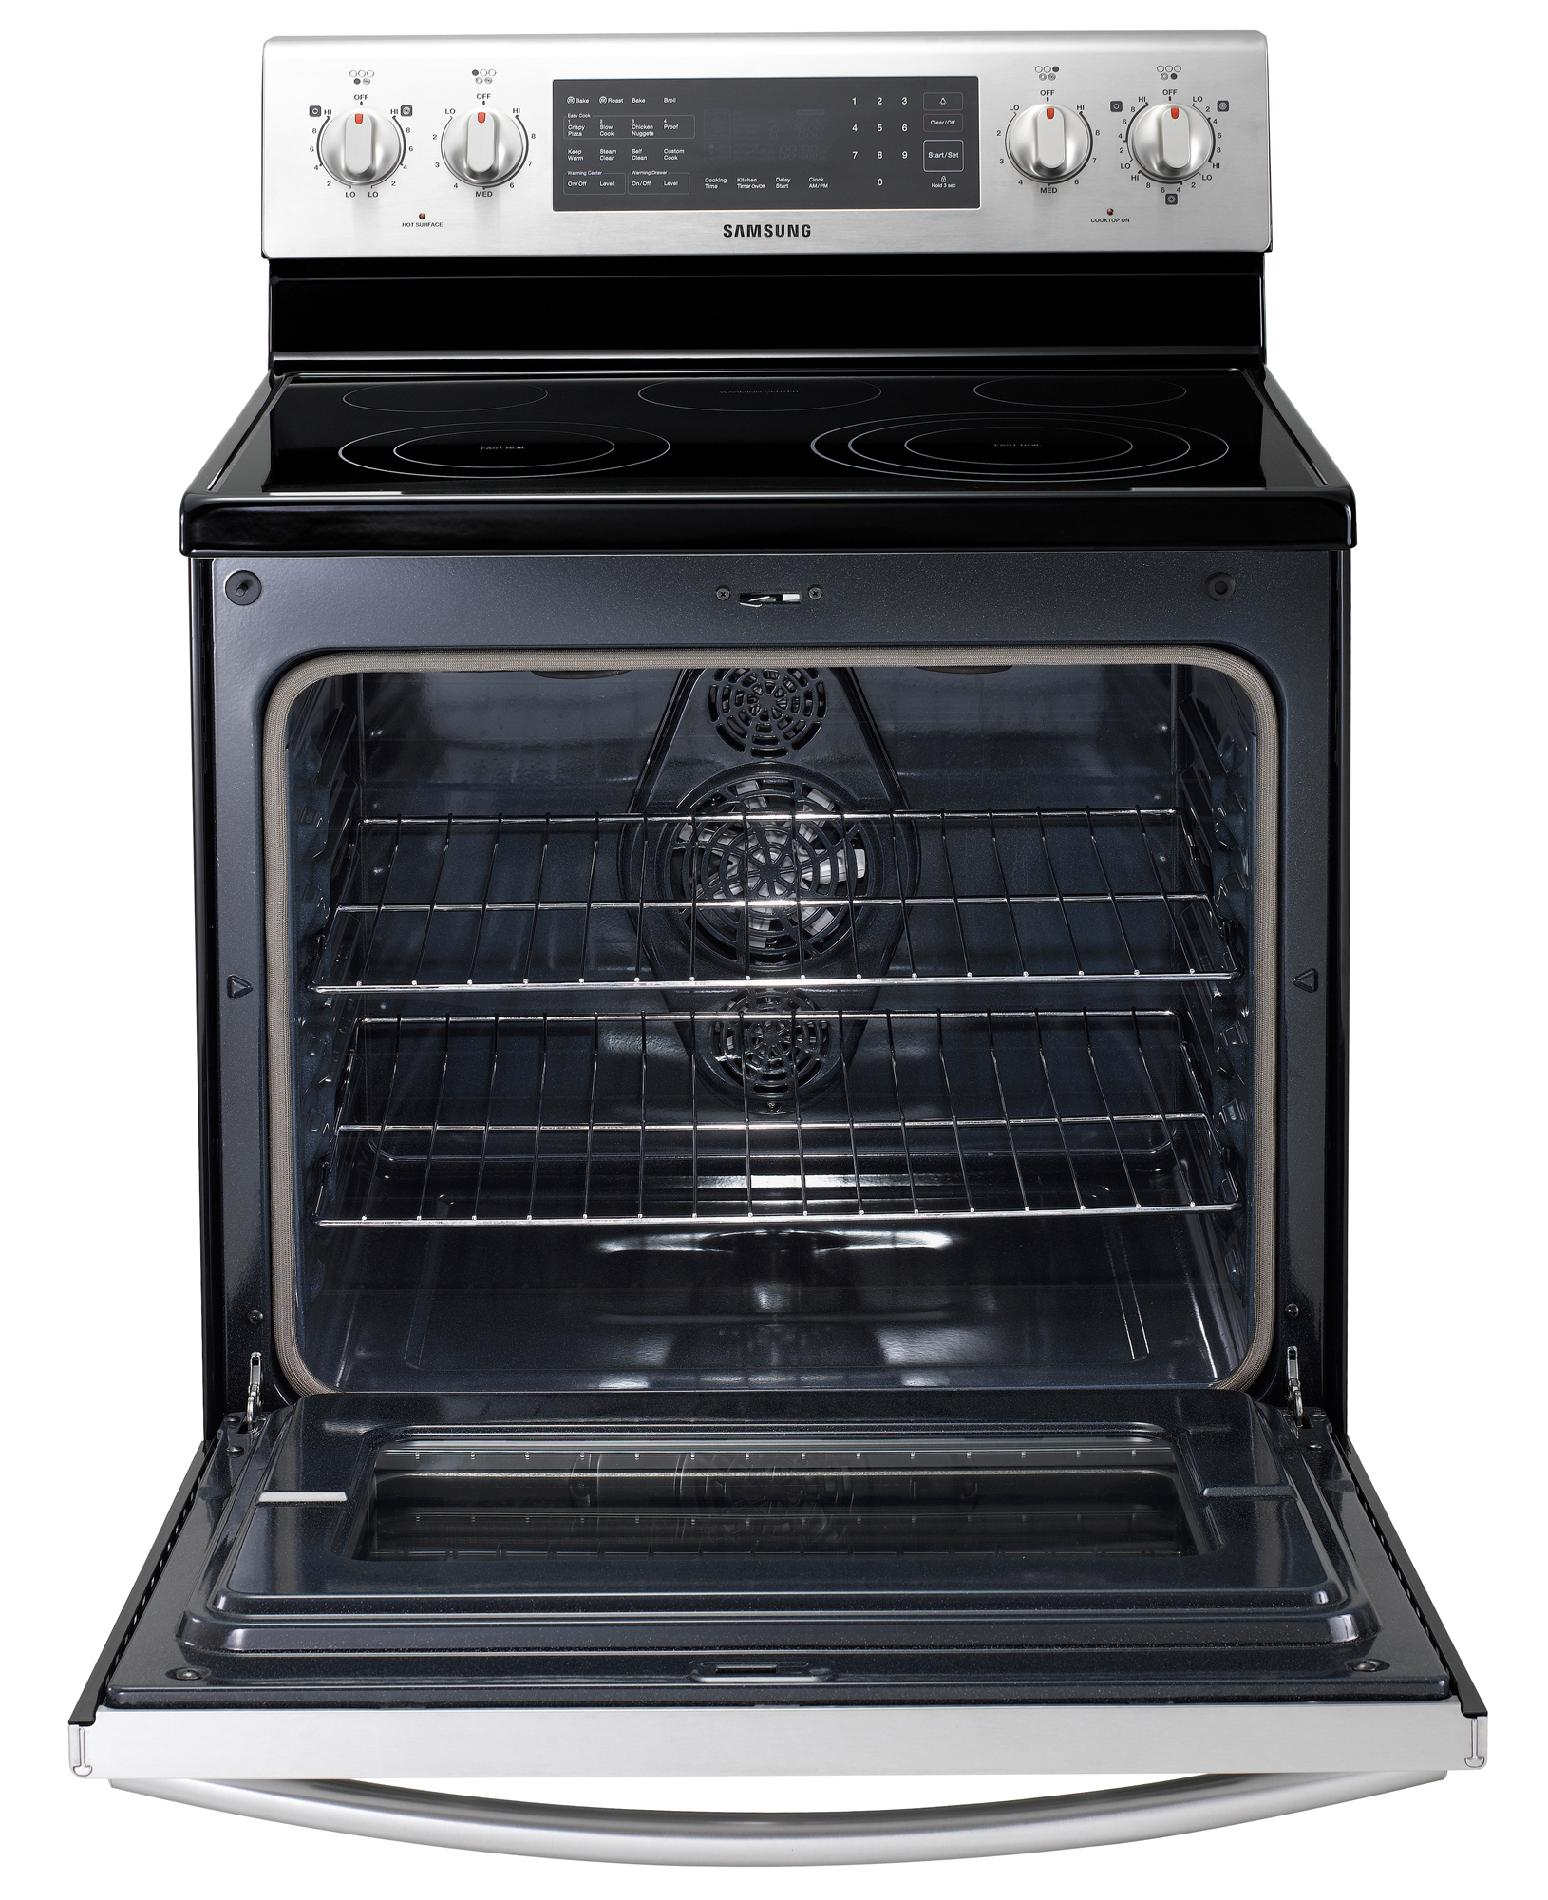 Samsung 5.9 cu. ft. Range with 3-Fan True Convection - Stainless Steel